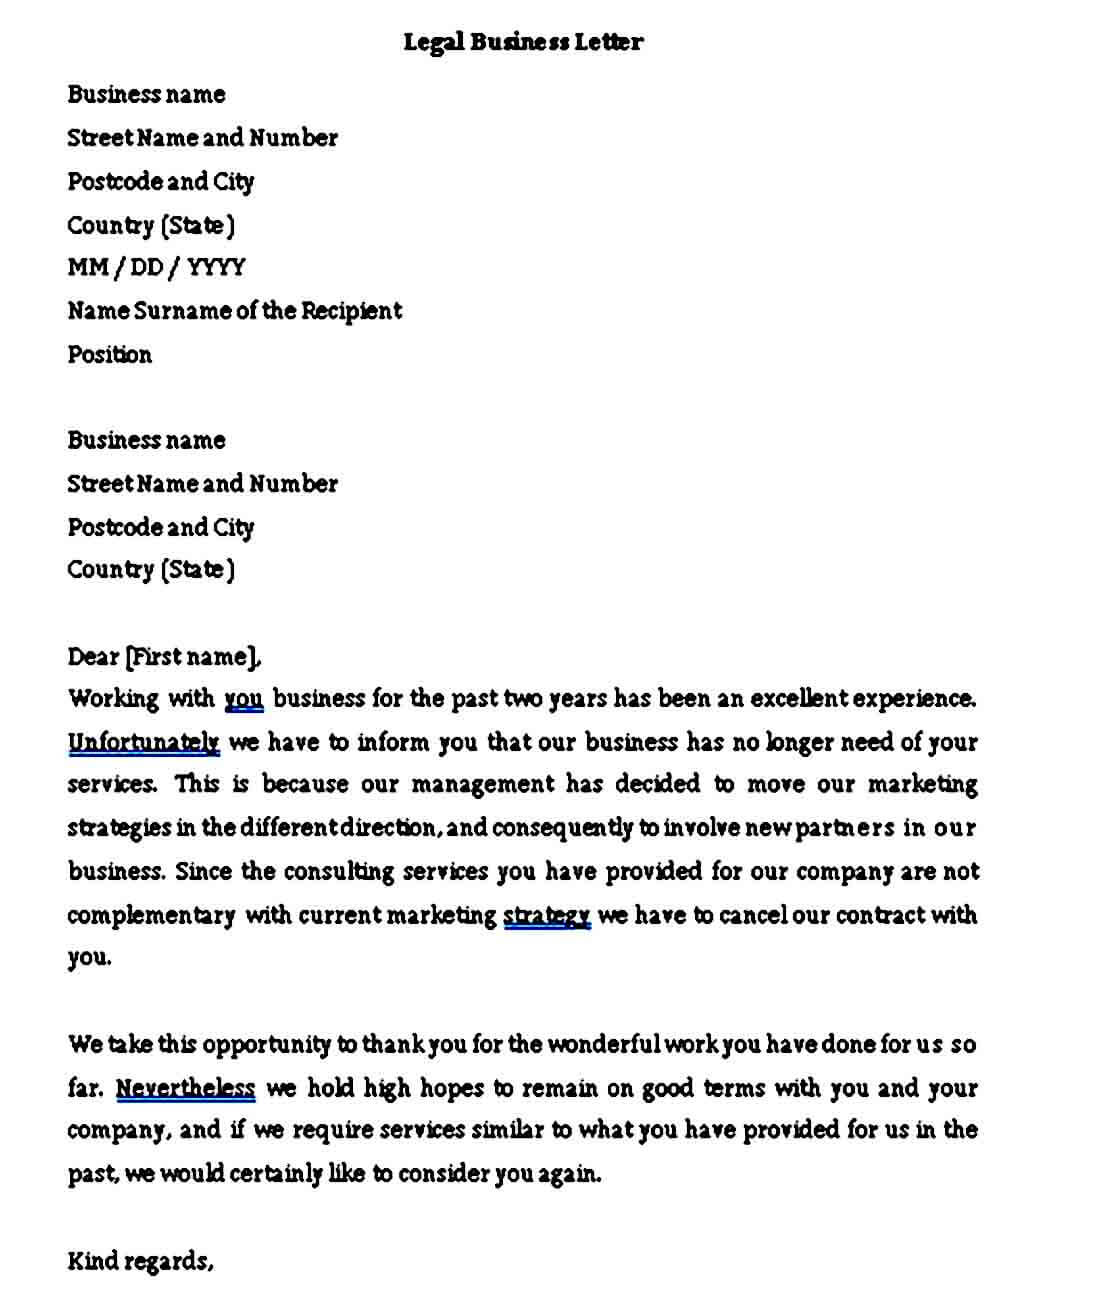 Legal Business Letter Format